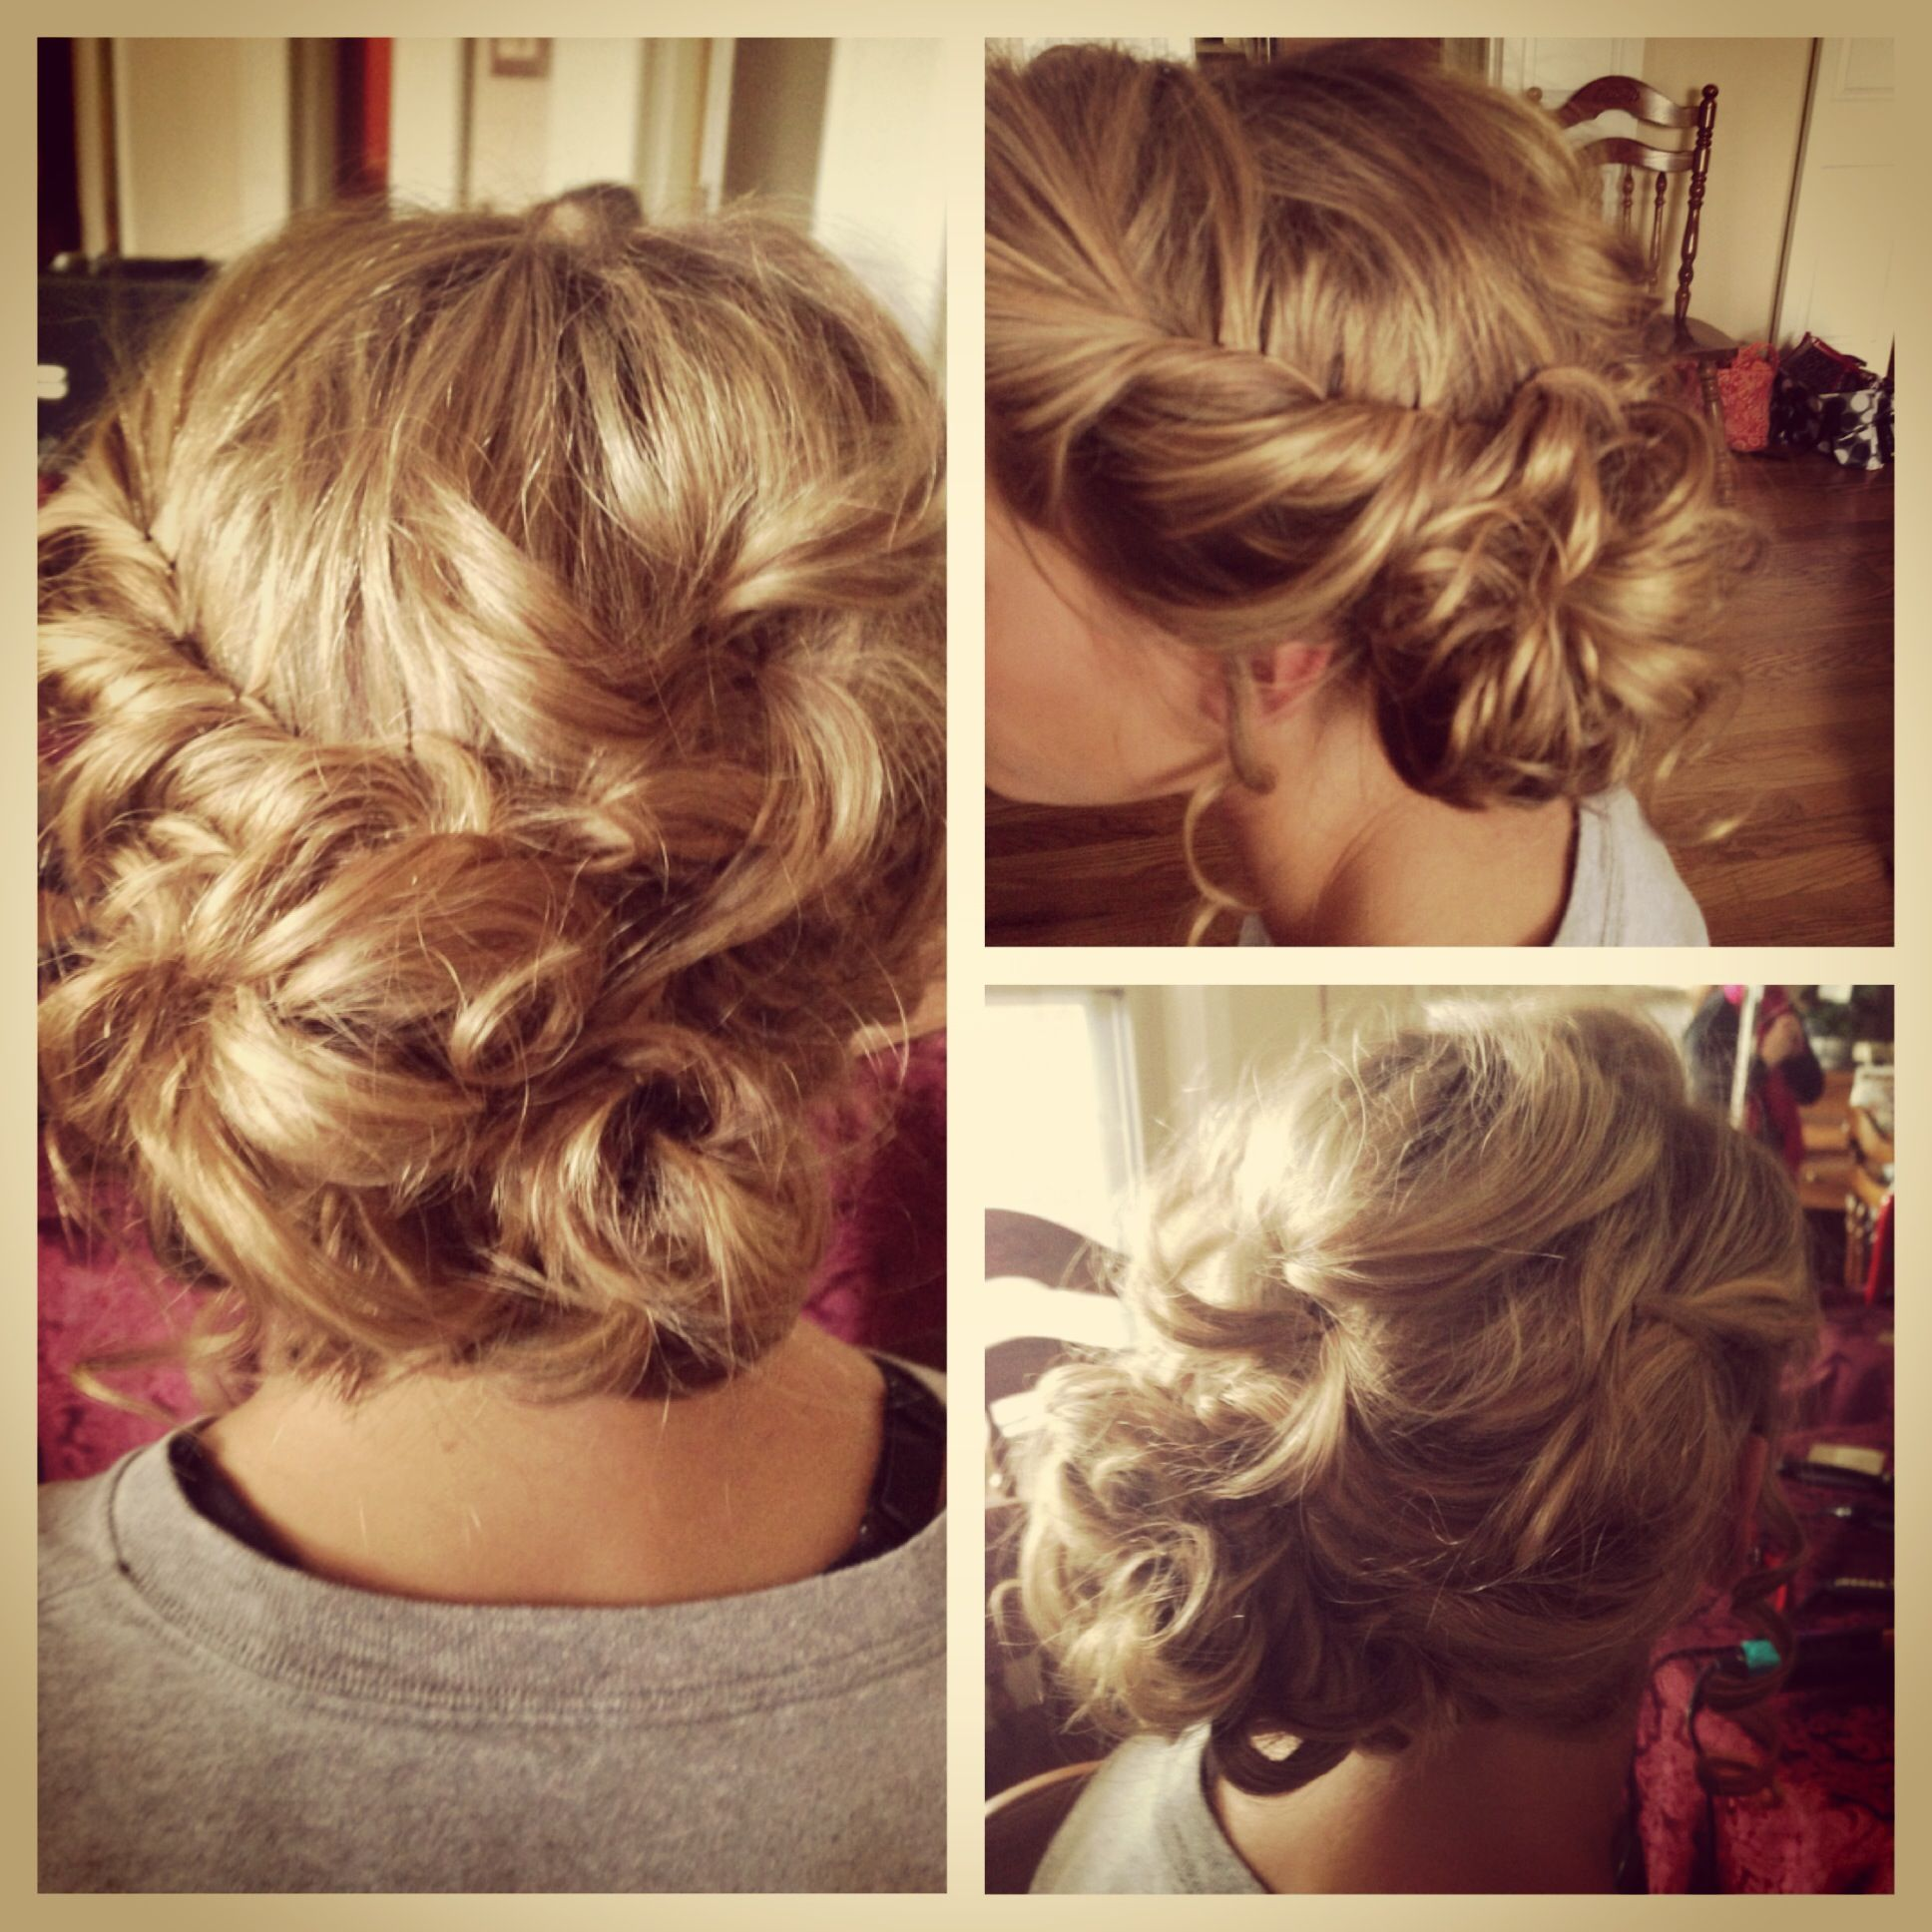 Hair by Rosalie Usher and Gretchen Priddy!